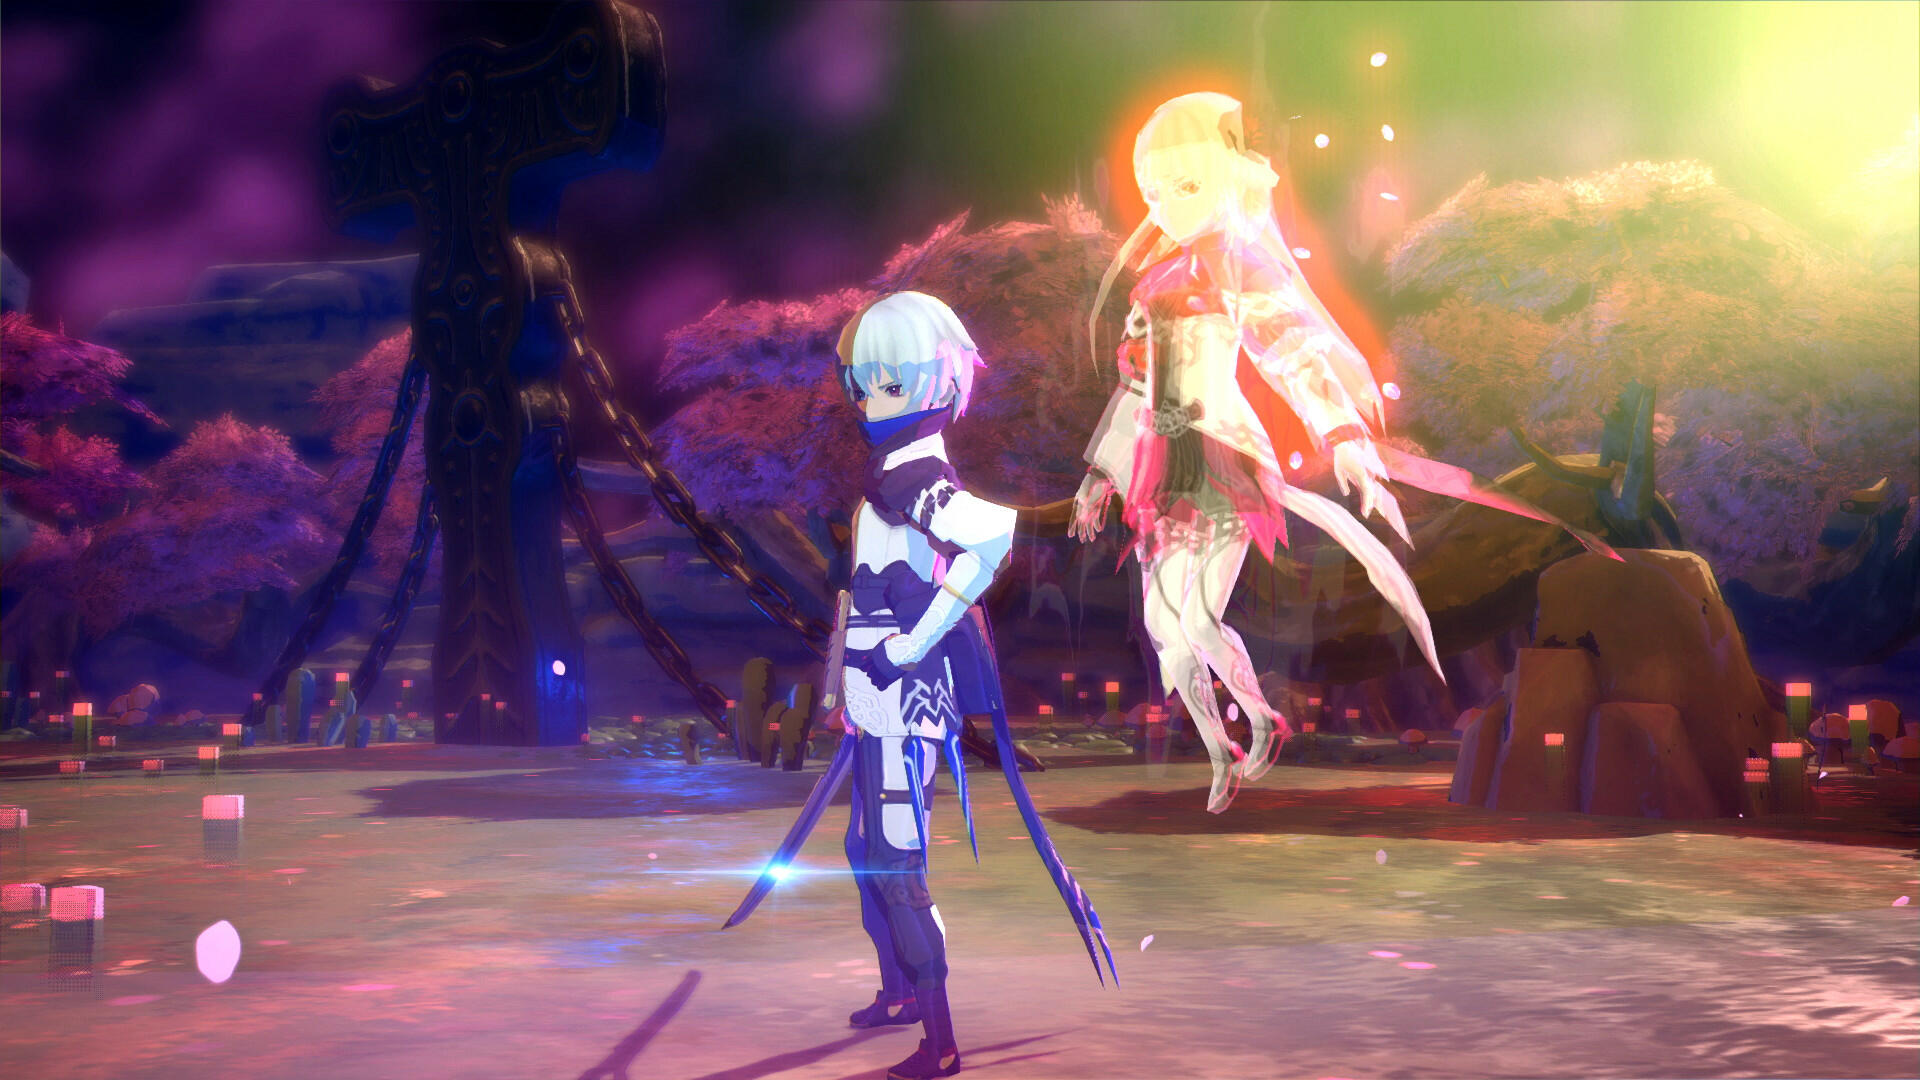 Tokyo RPG Factory on How the Studio's Classic RPG Inspiration Fuels the Action-RPG Oninaki